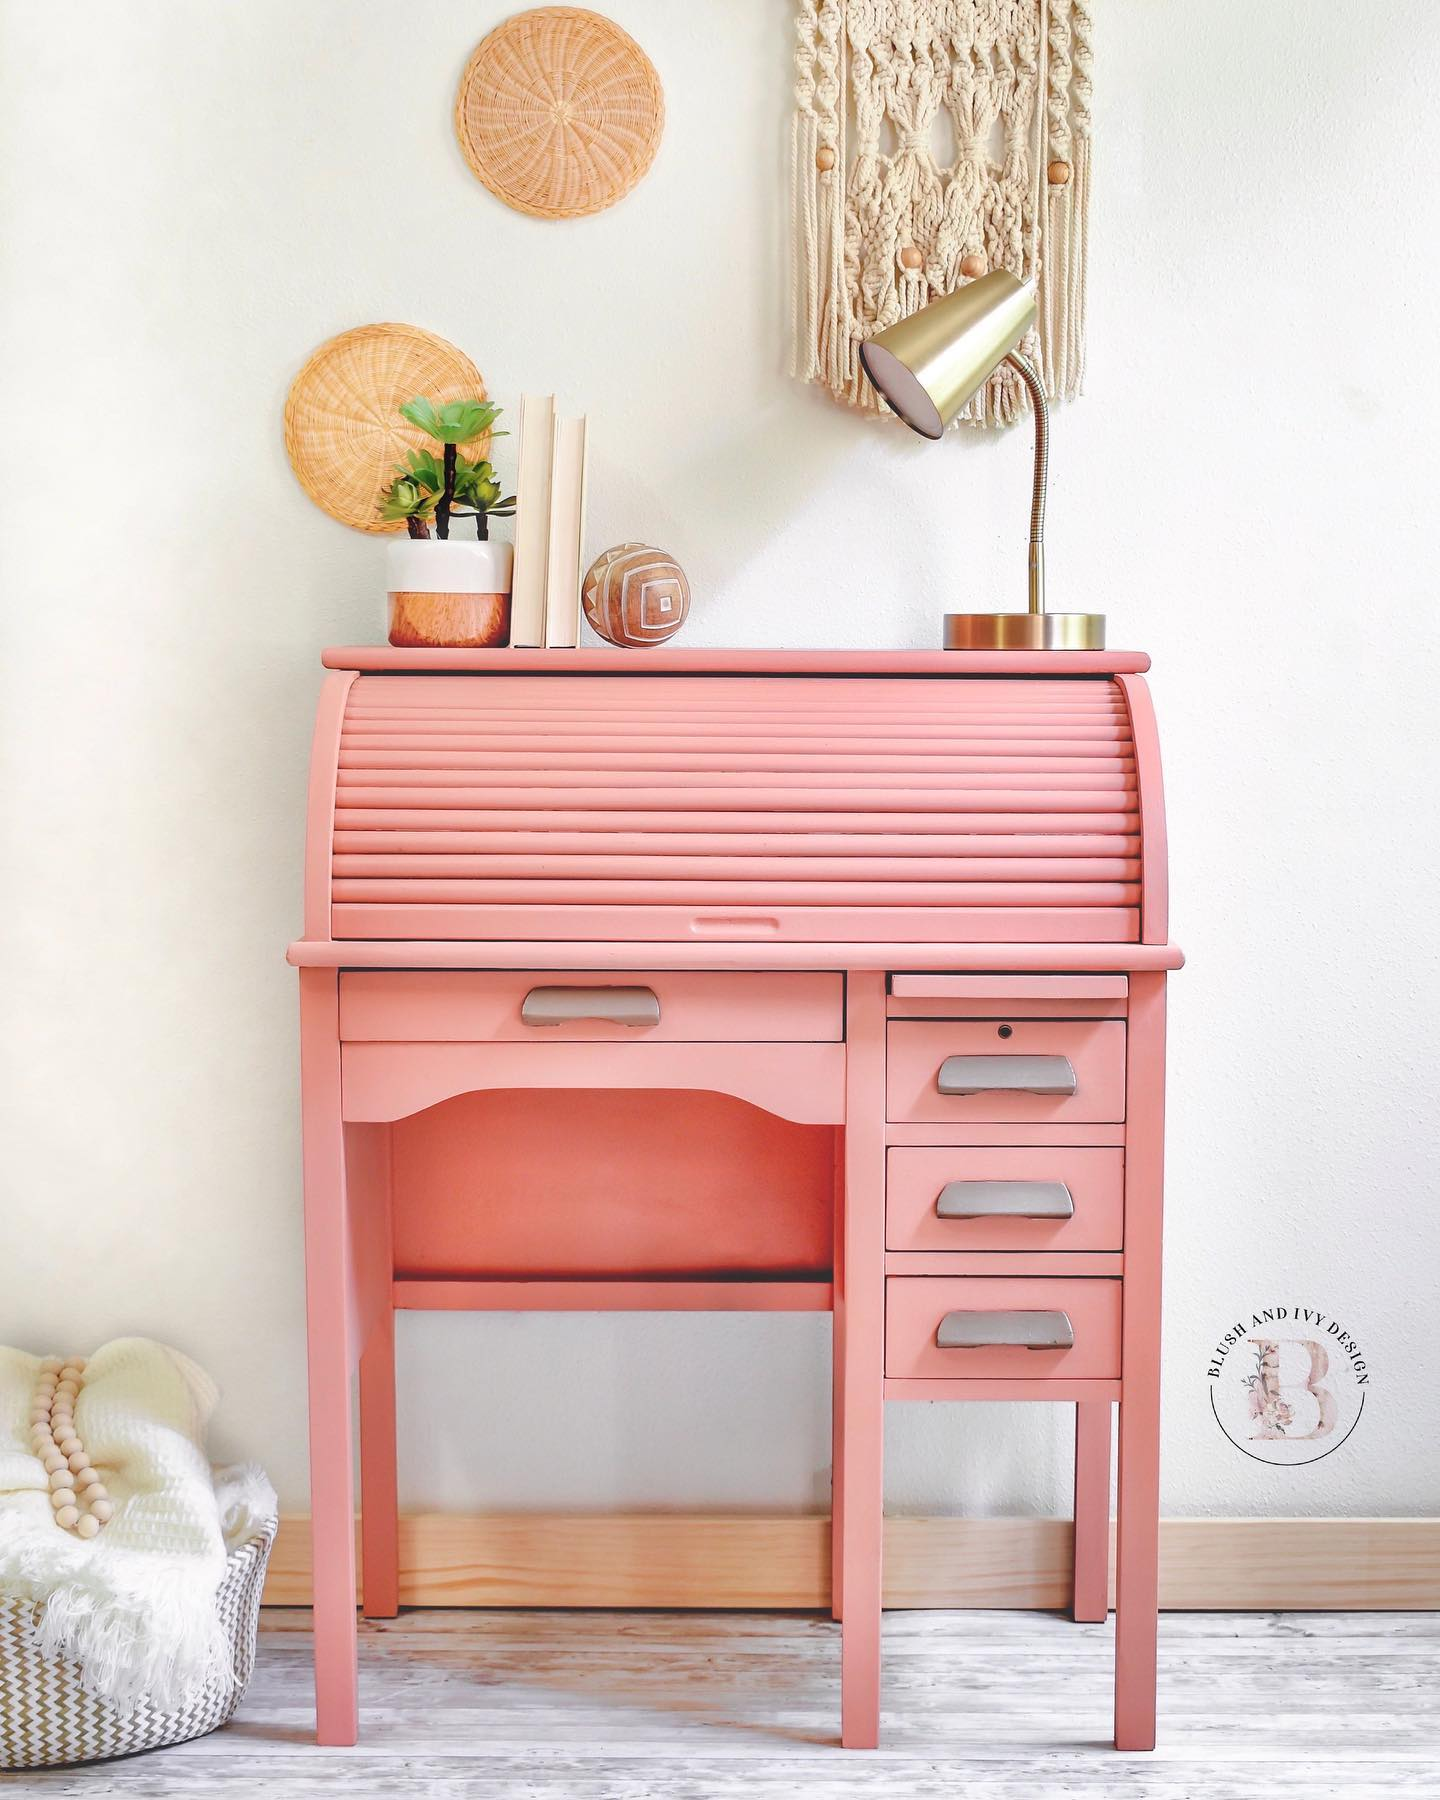 Roll Top Desk in Peachy Keen with Silver Accents